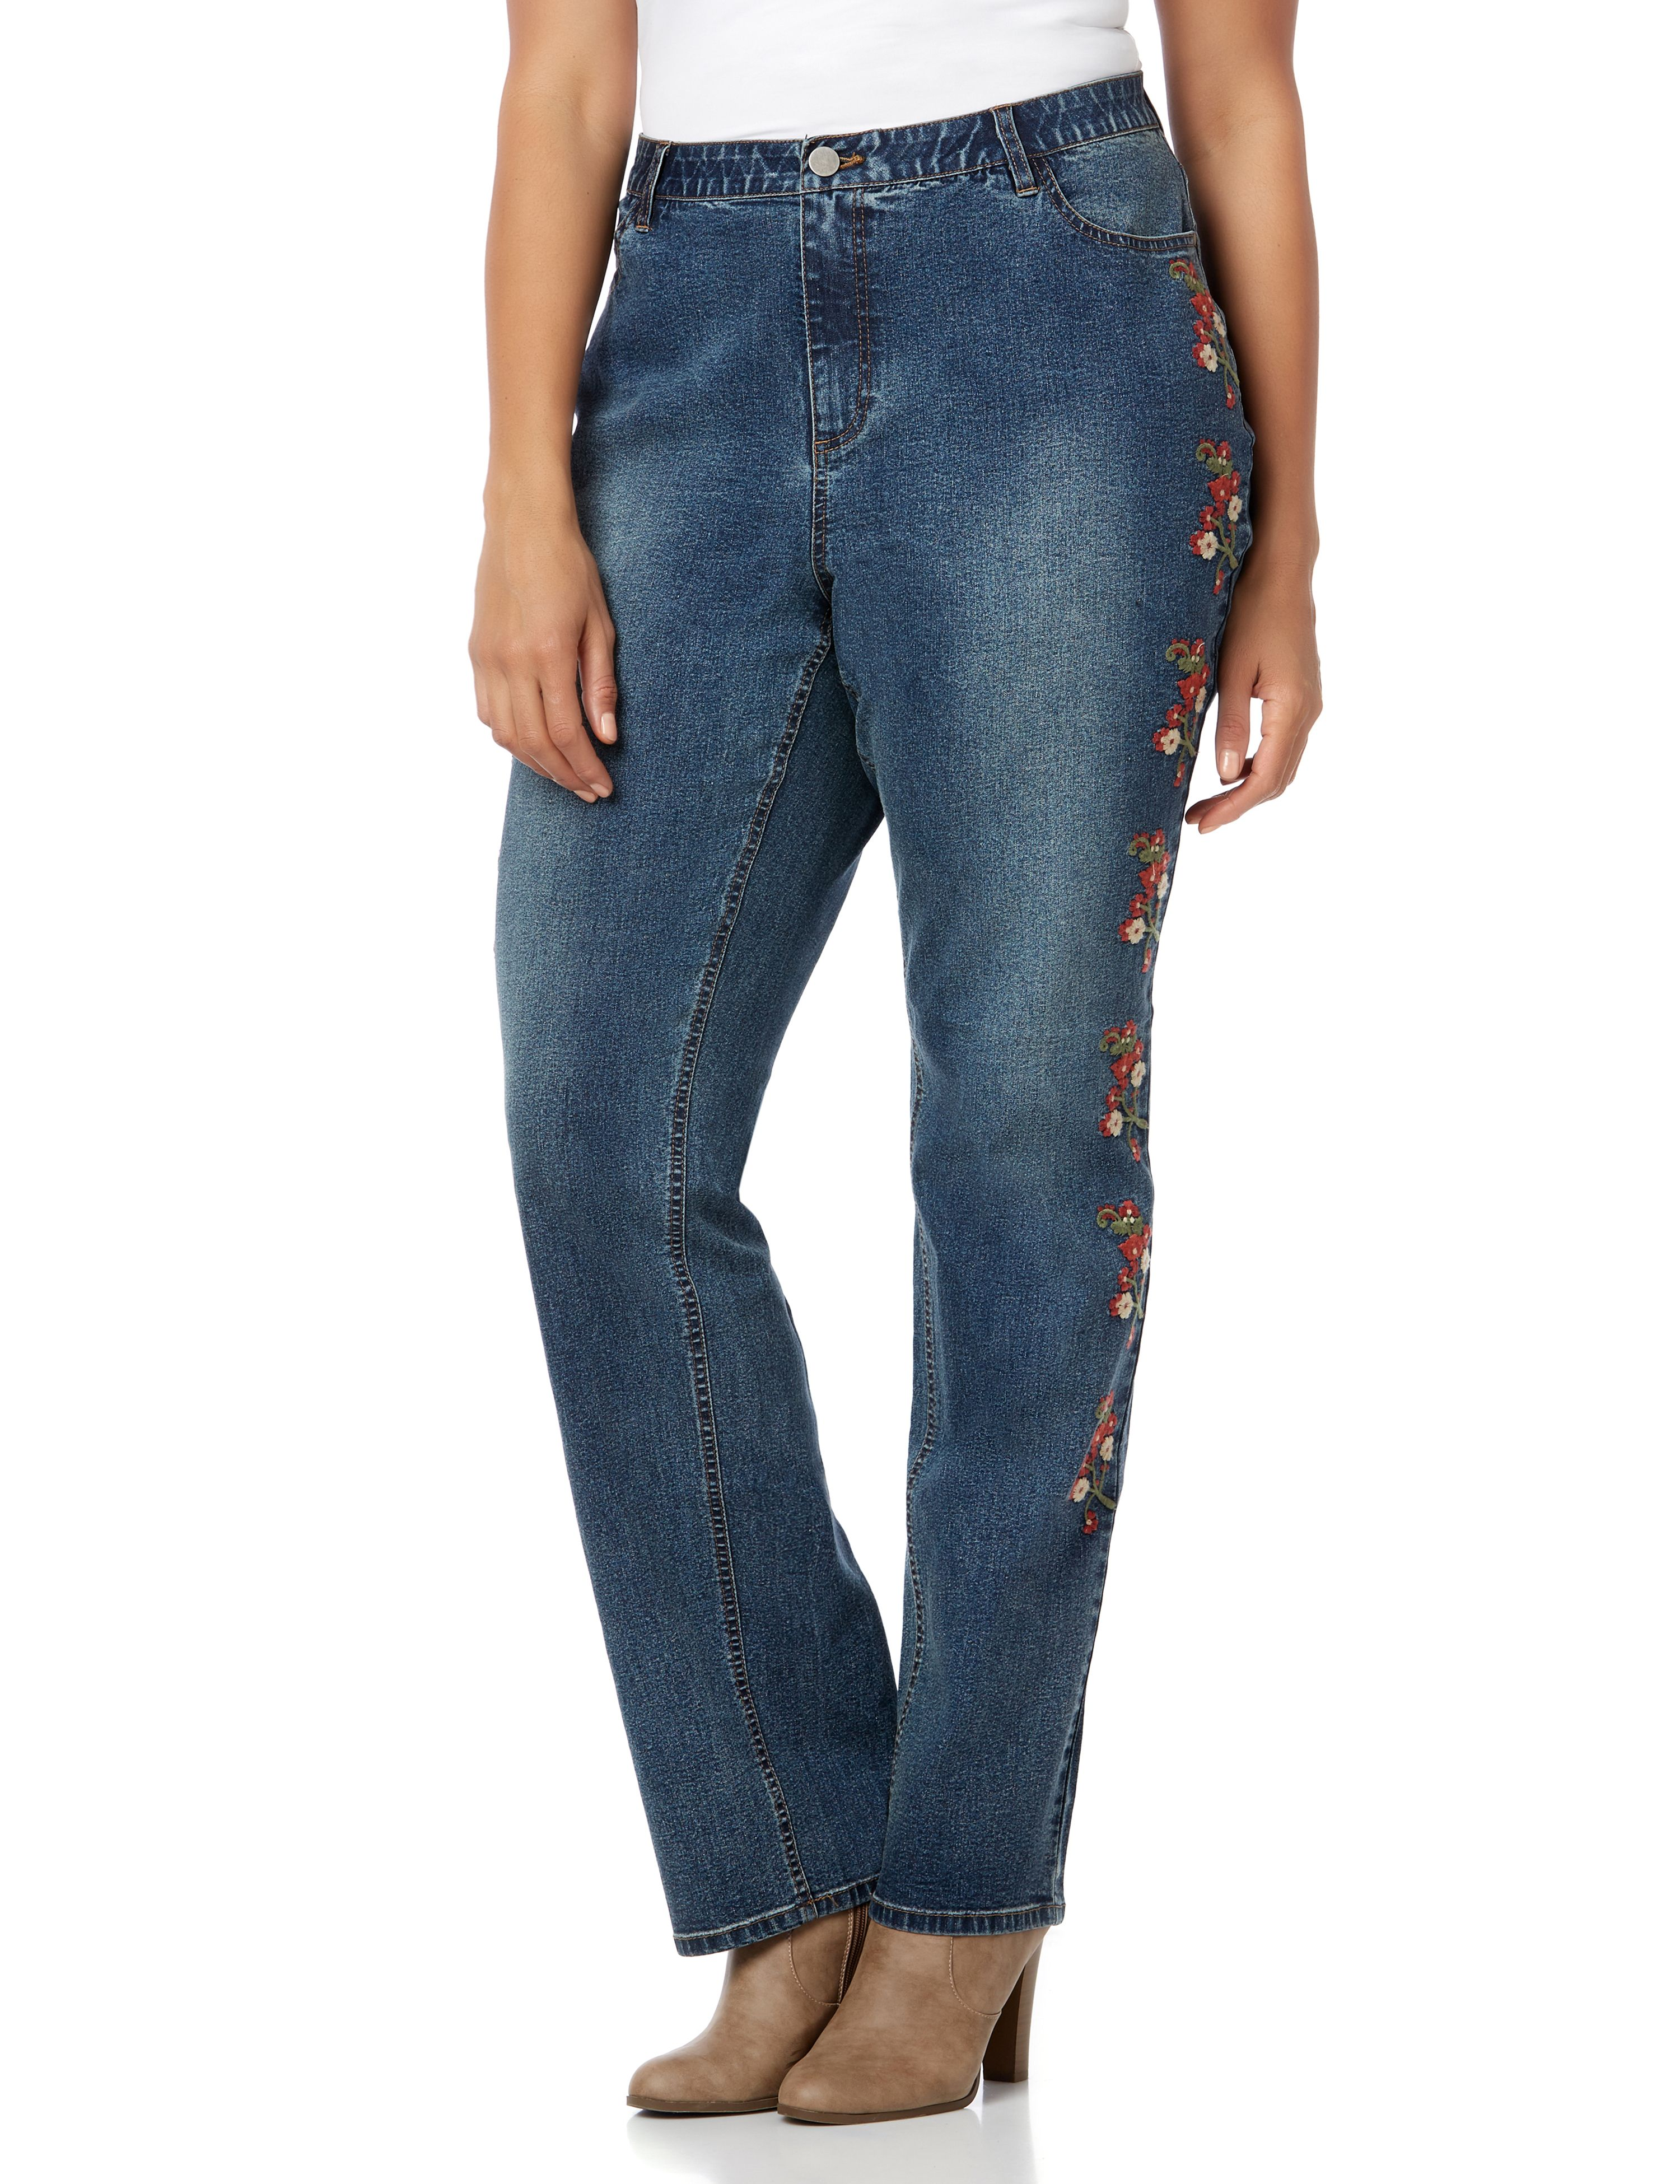 Posy Outlook Jean 1087805 BOYFRIEND JEAN WITH EMBROID MP-300098953